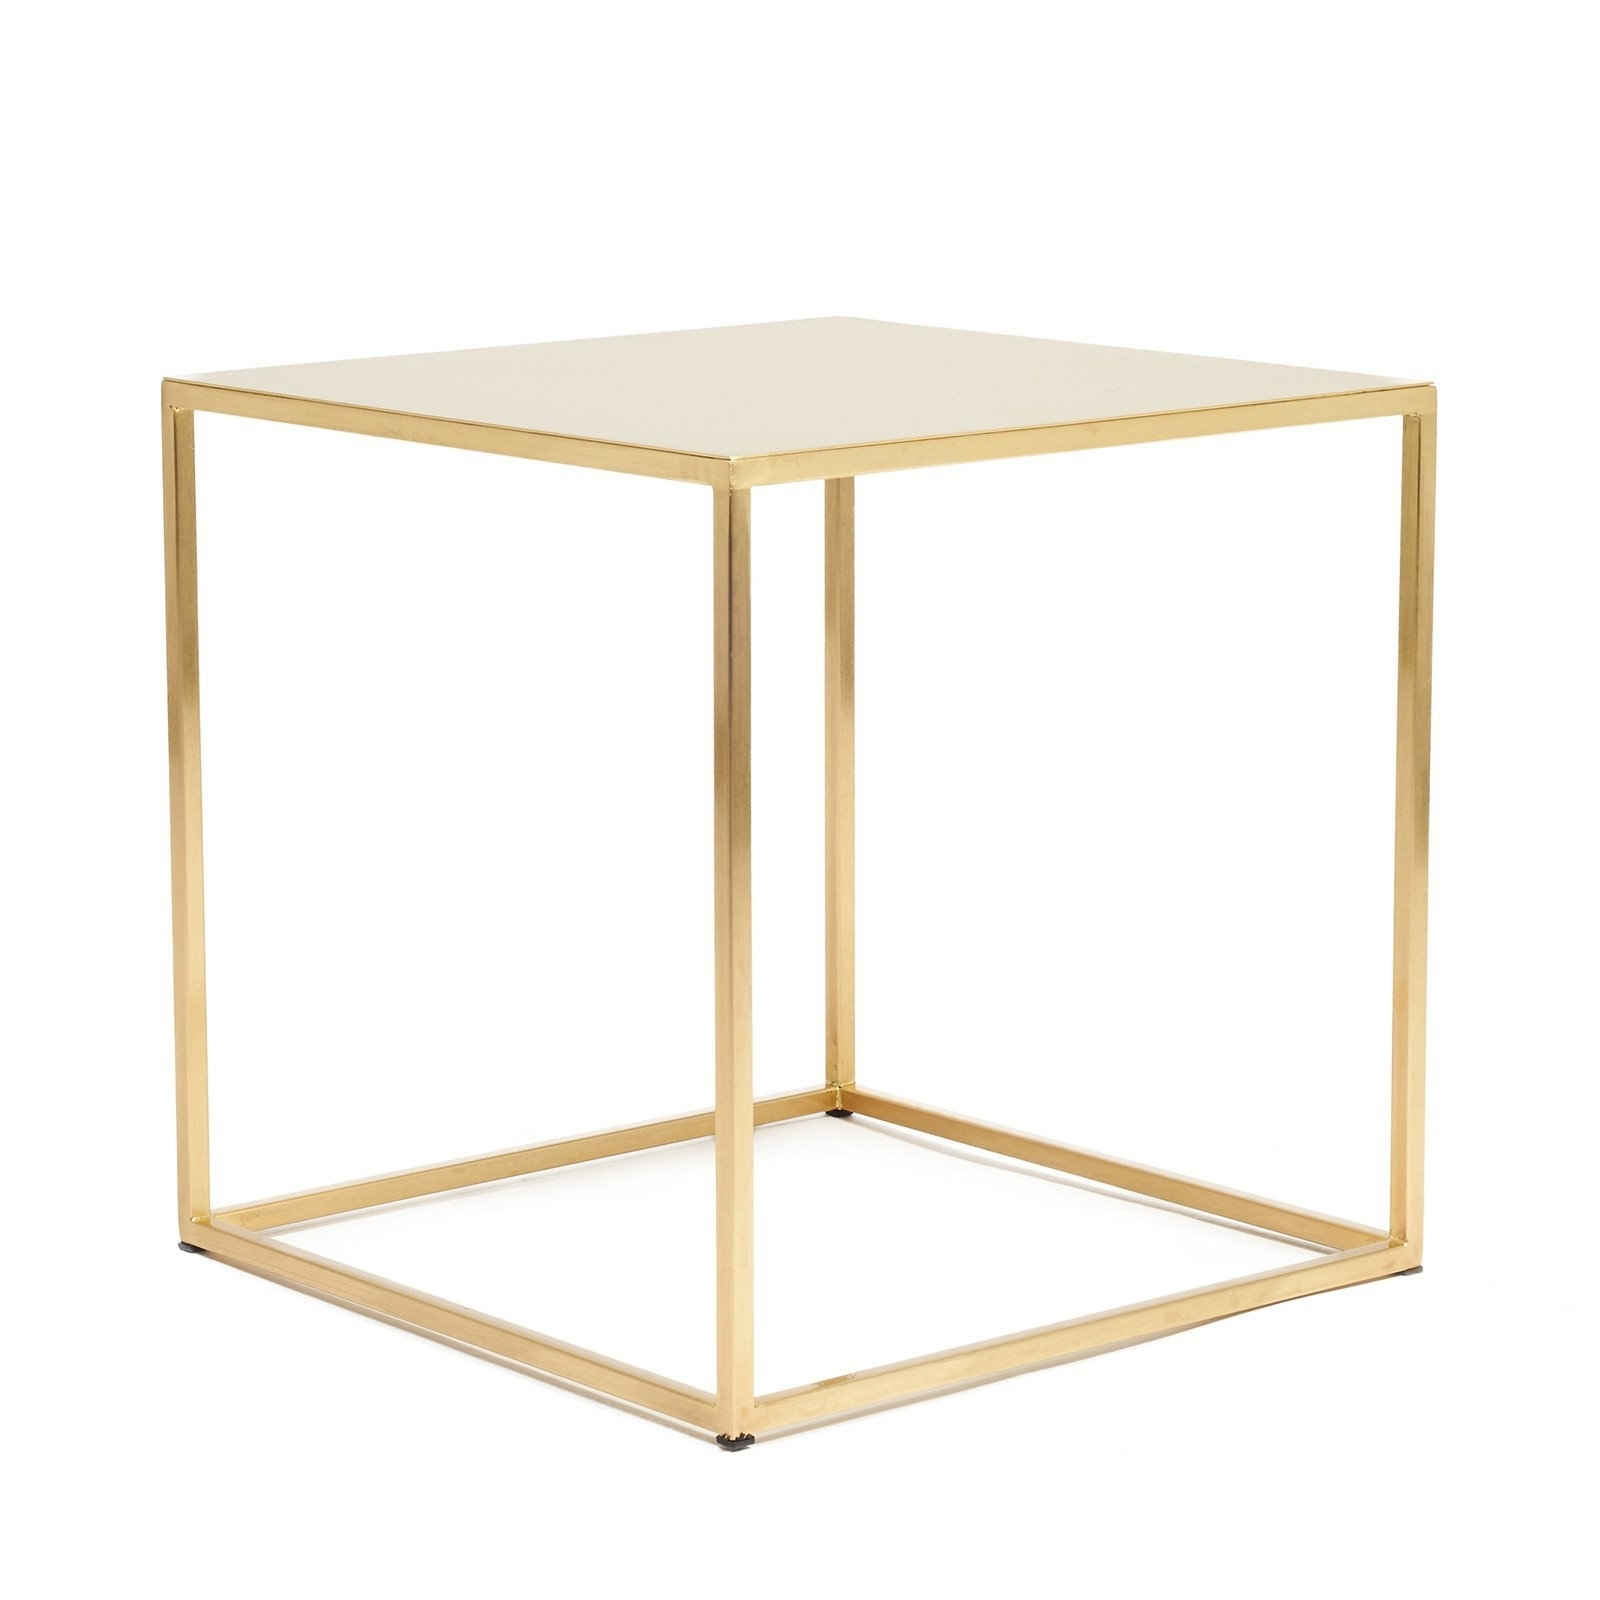 Satin With Regard To Most Recent Brass Iron Cube Tables (View 18 of 20)